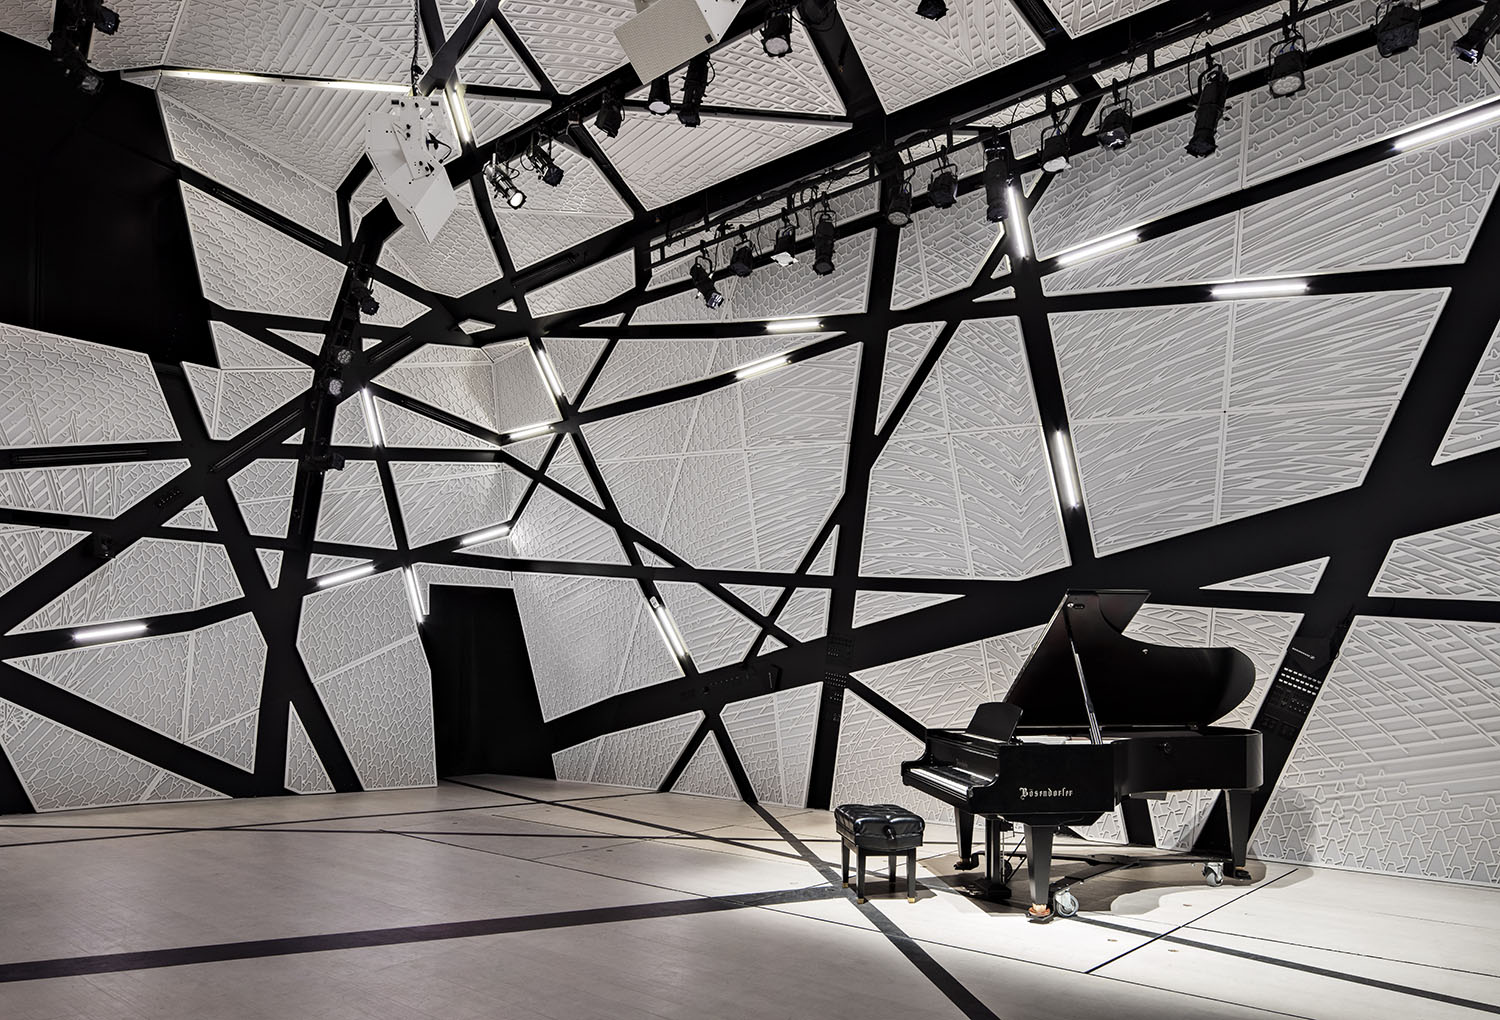 National sawdust designed by bureau v nonprofit chamber music hall